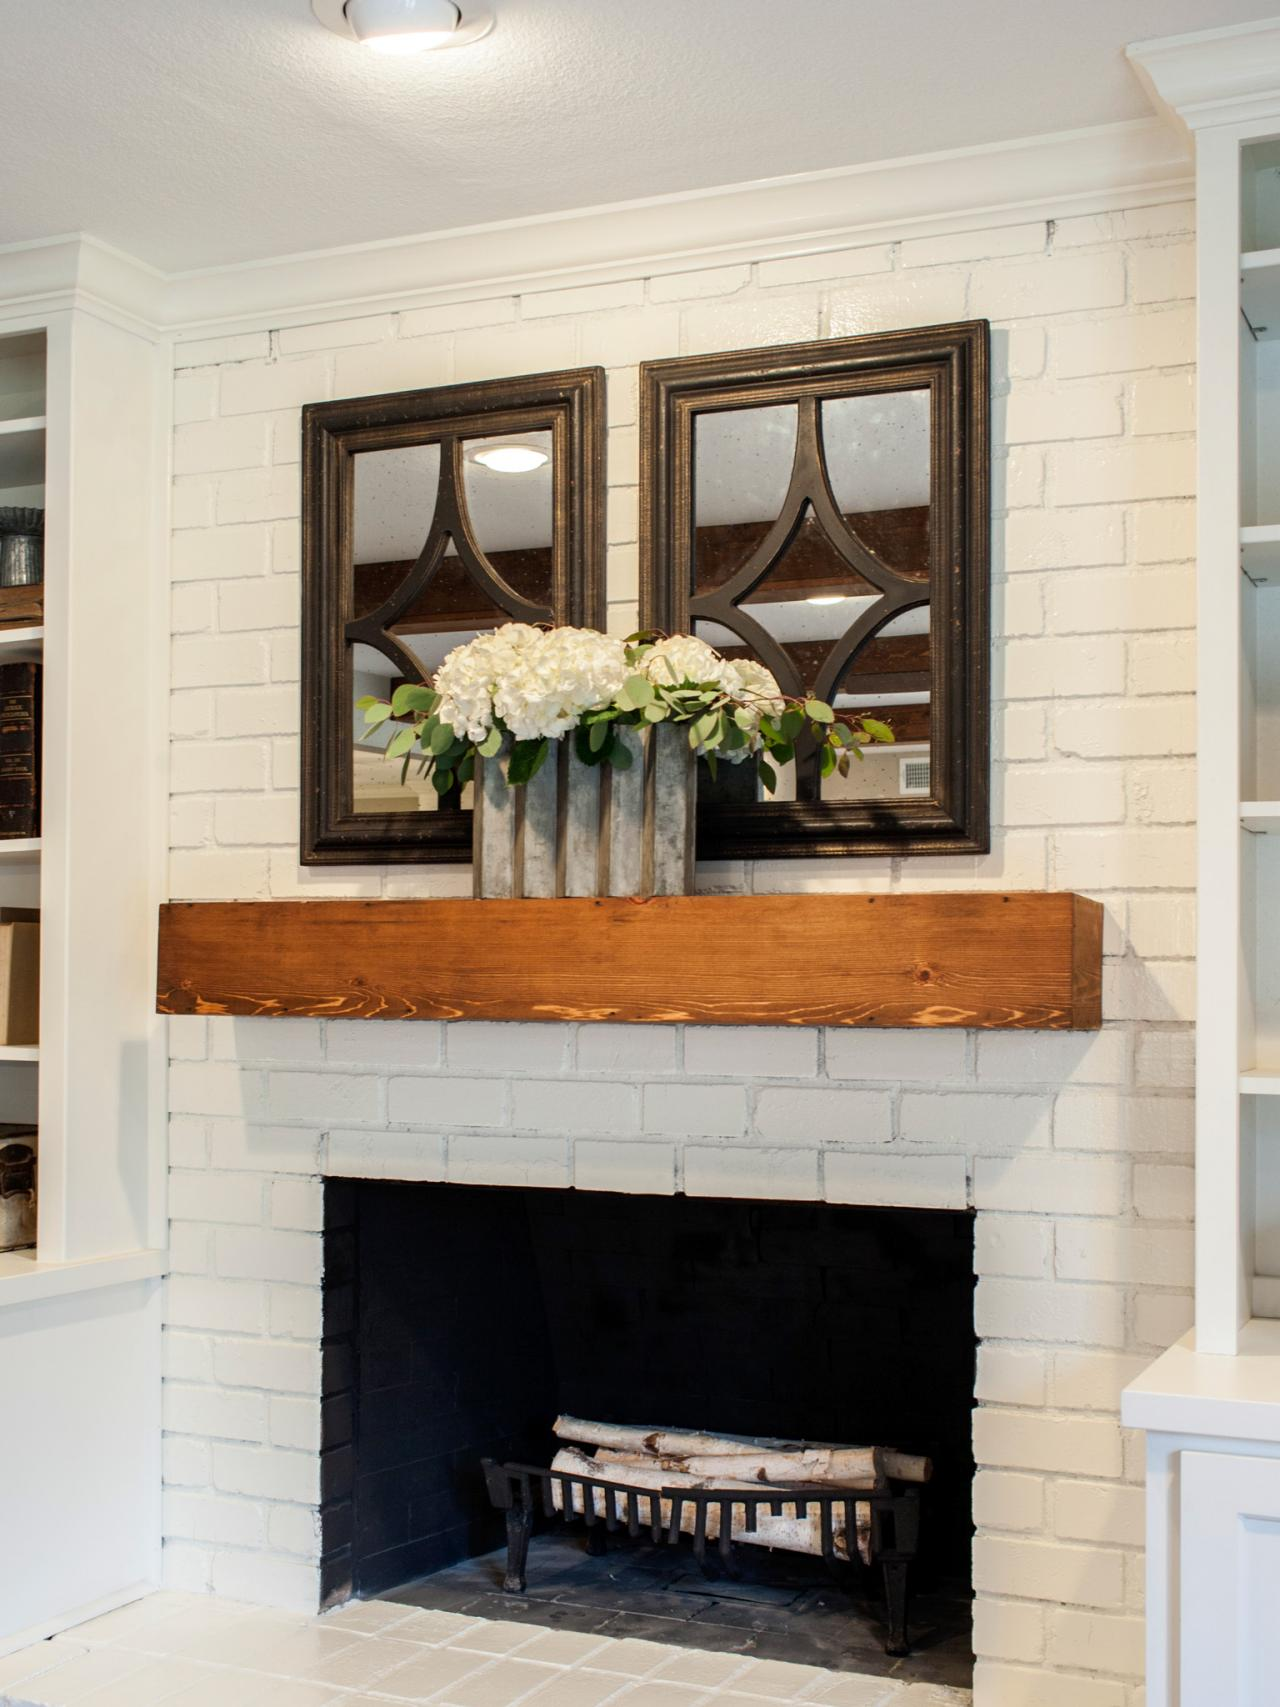 How To Decorate Fireplace How To Decorate Your Fireplace In The Summer Hgtv S Decorating